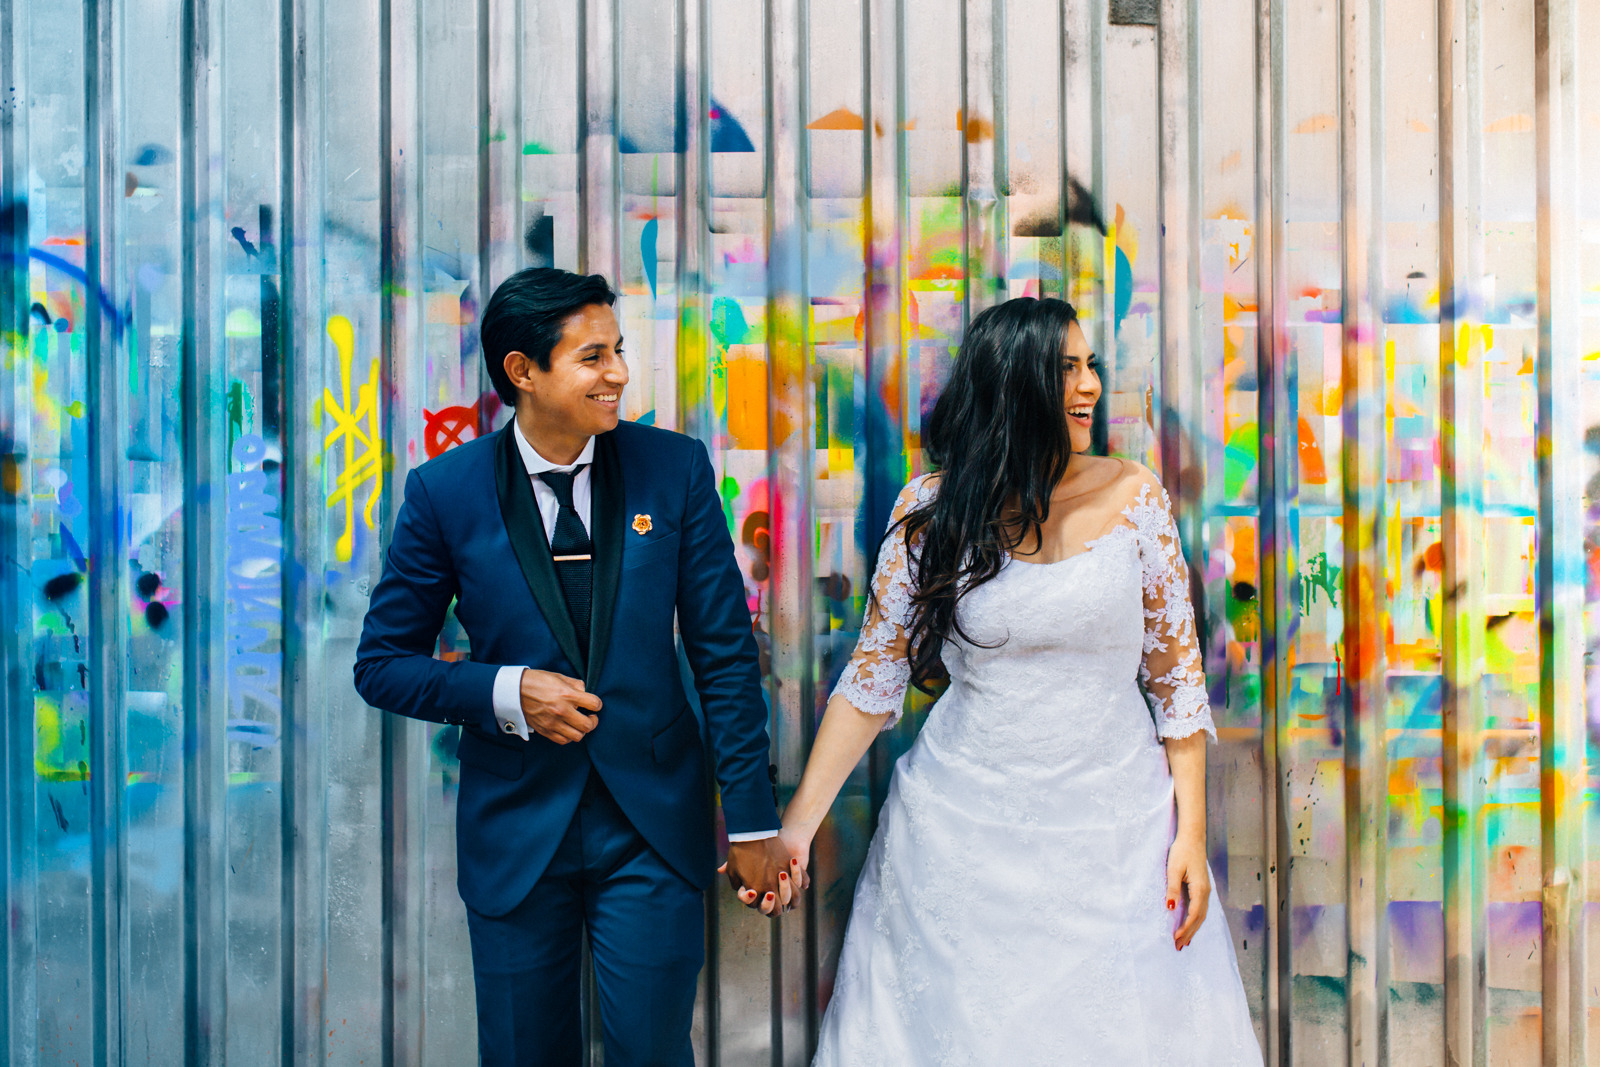 NYC Wedding Photography Lofts at Prince Brooklyn NYC Photographer Boris Zaretsky _B2C4882-Edit.jpg